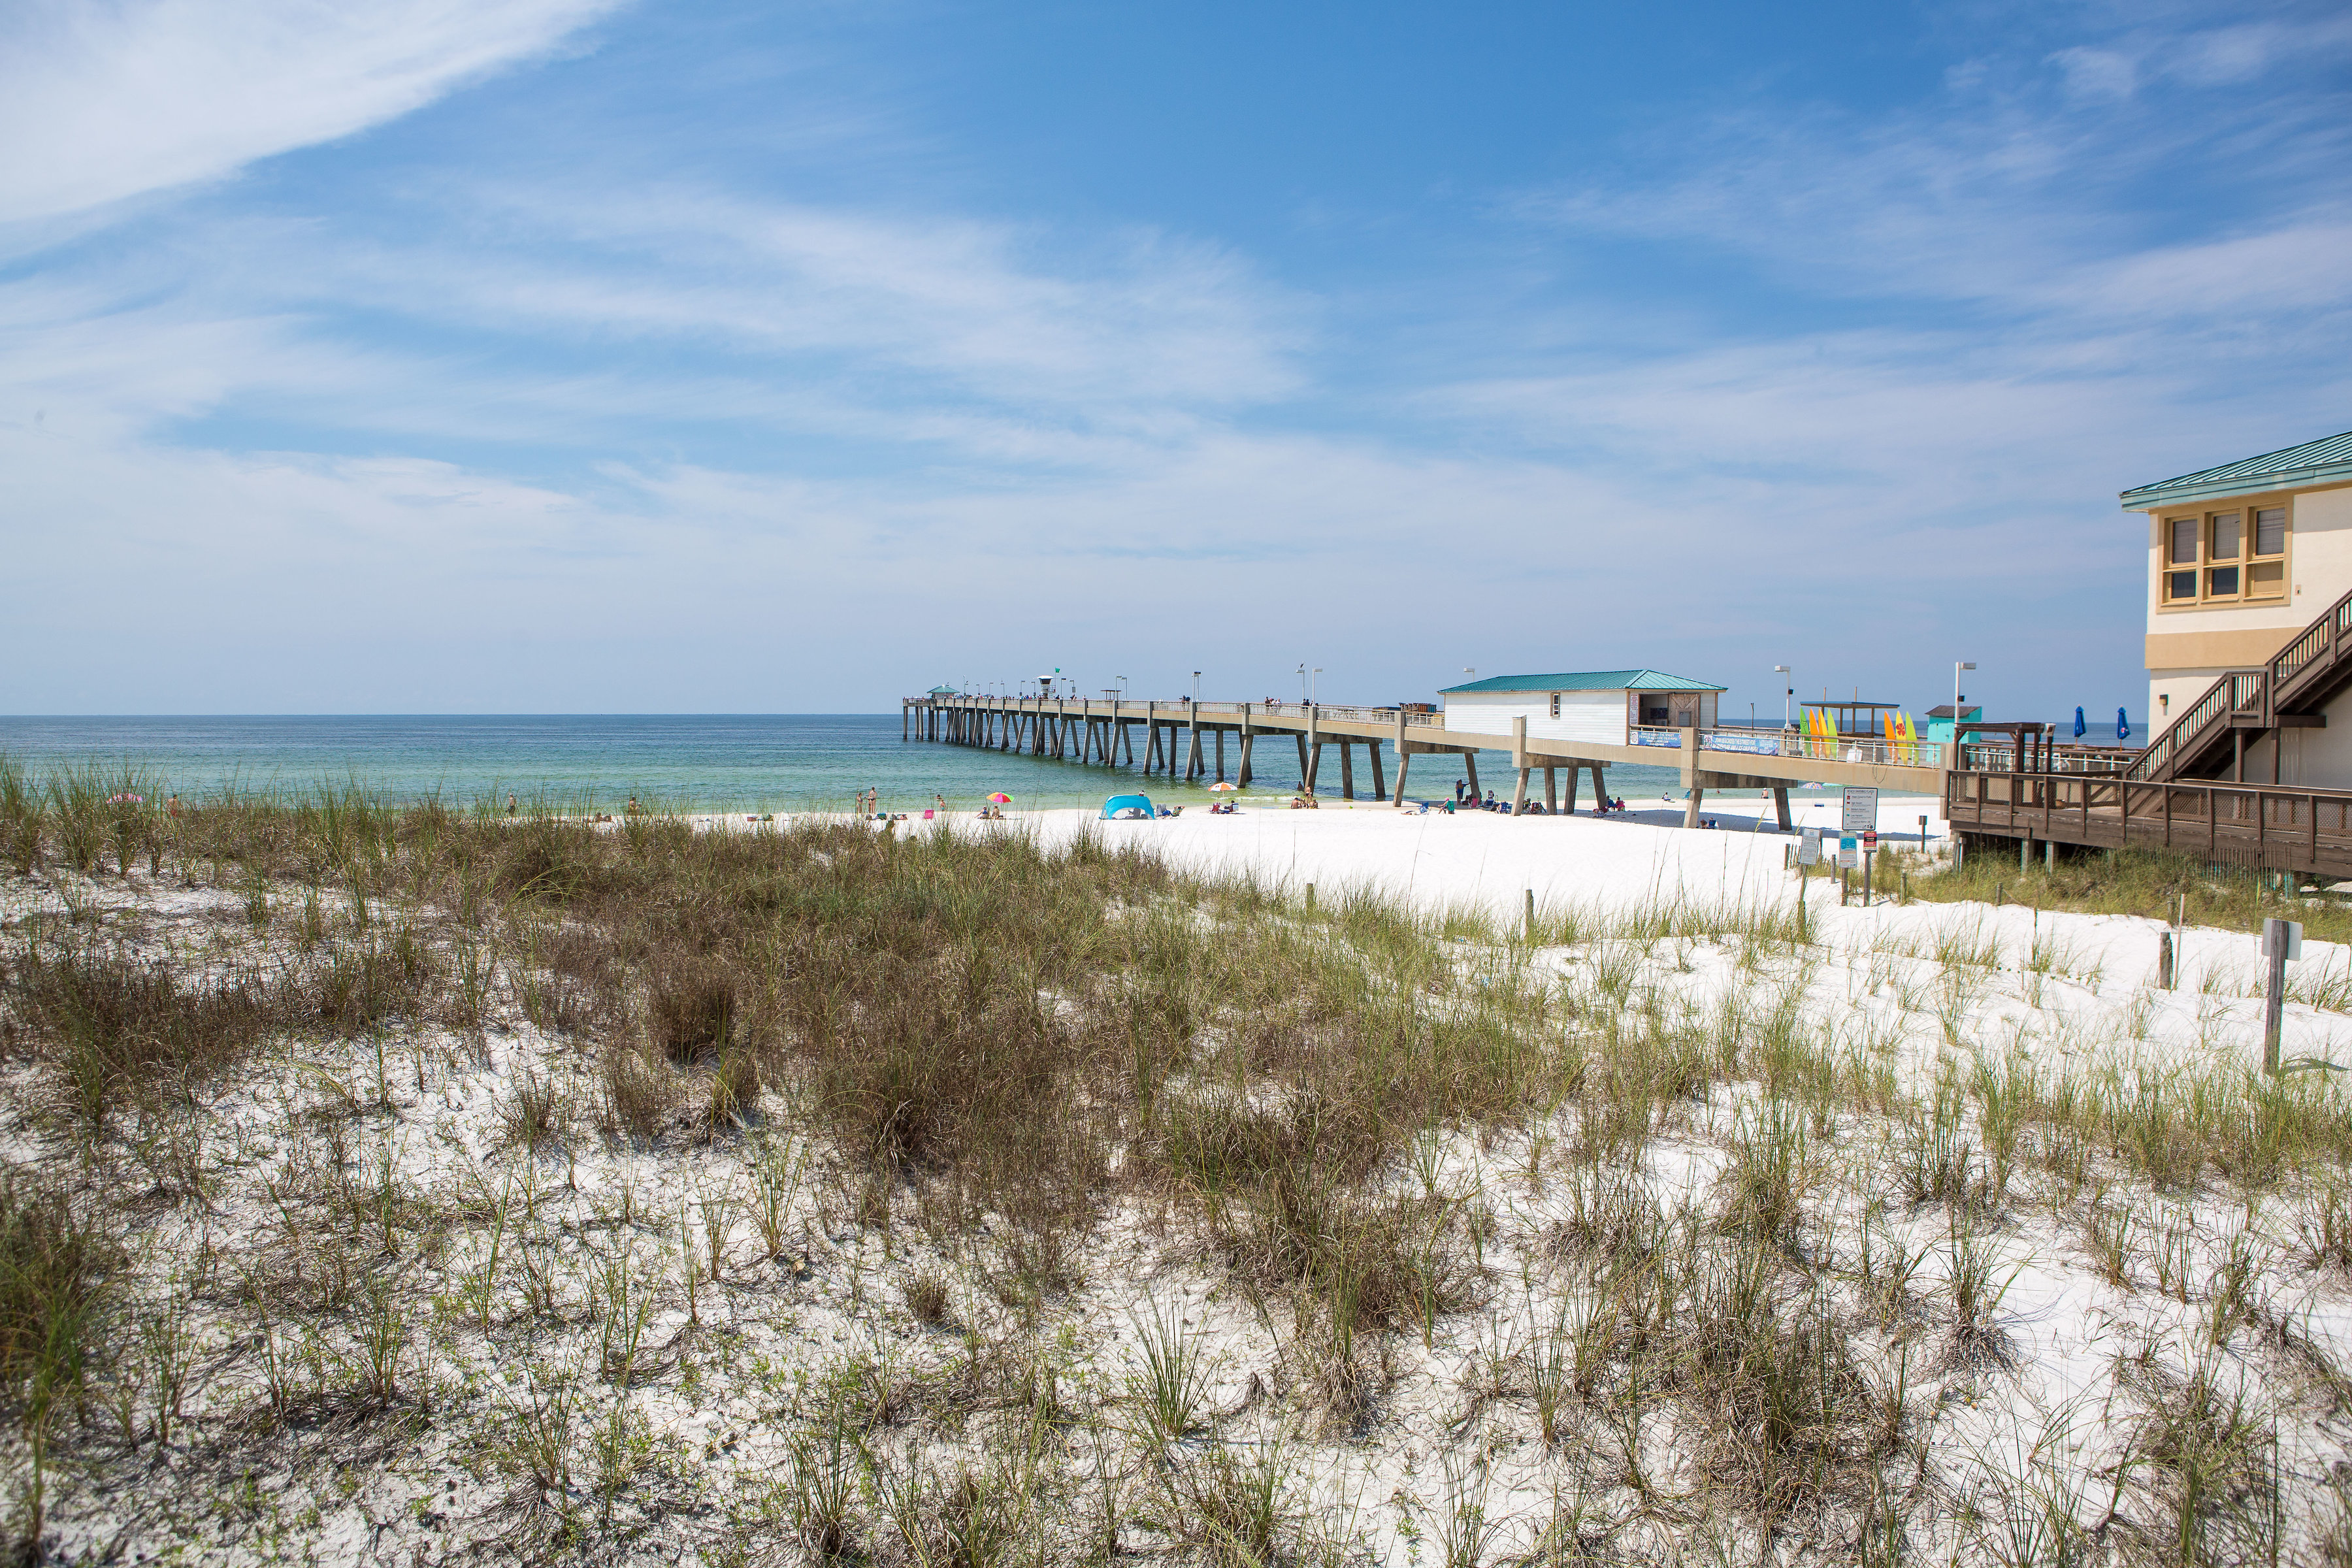 Tides & Currents | Environmental Information | Florida's Emerald Coast